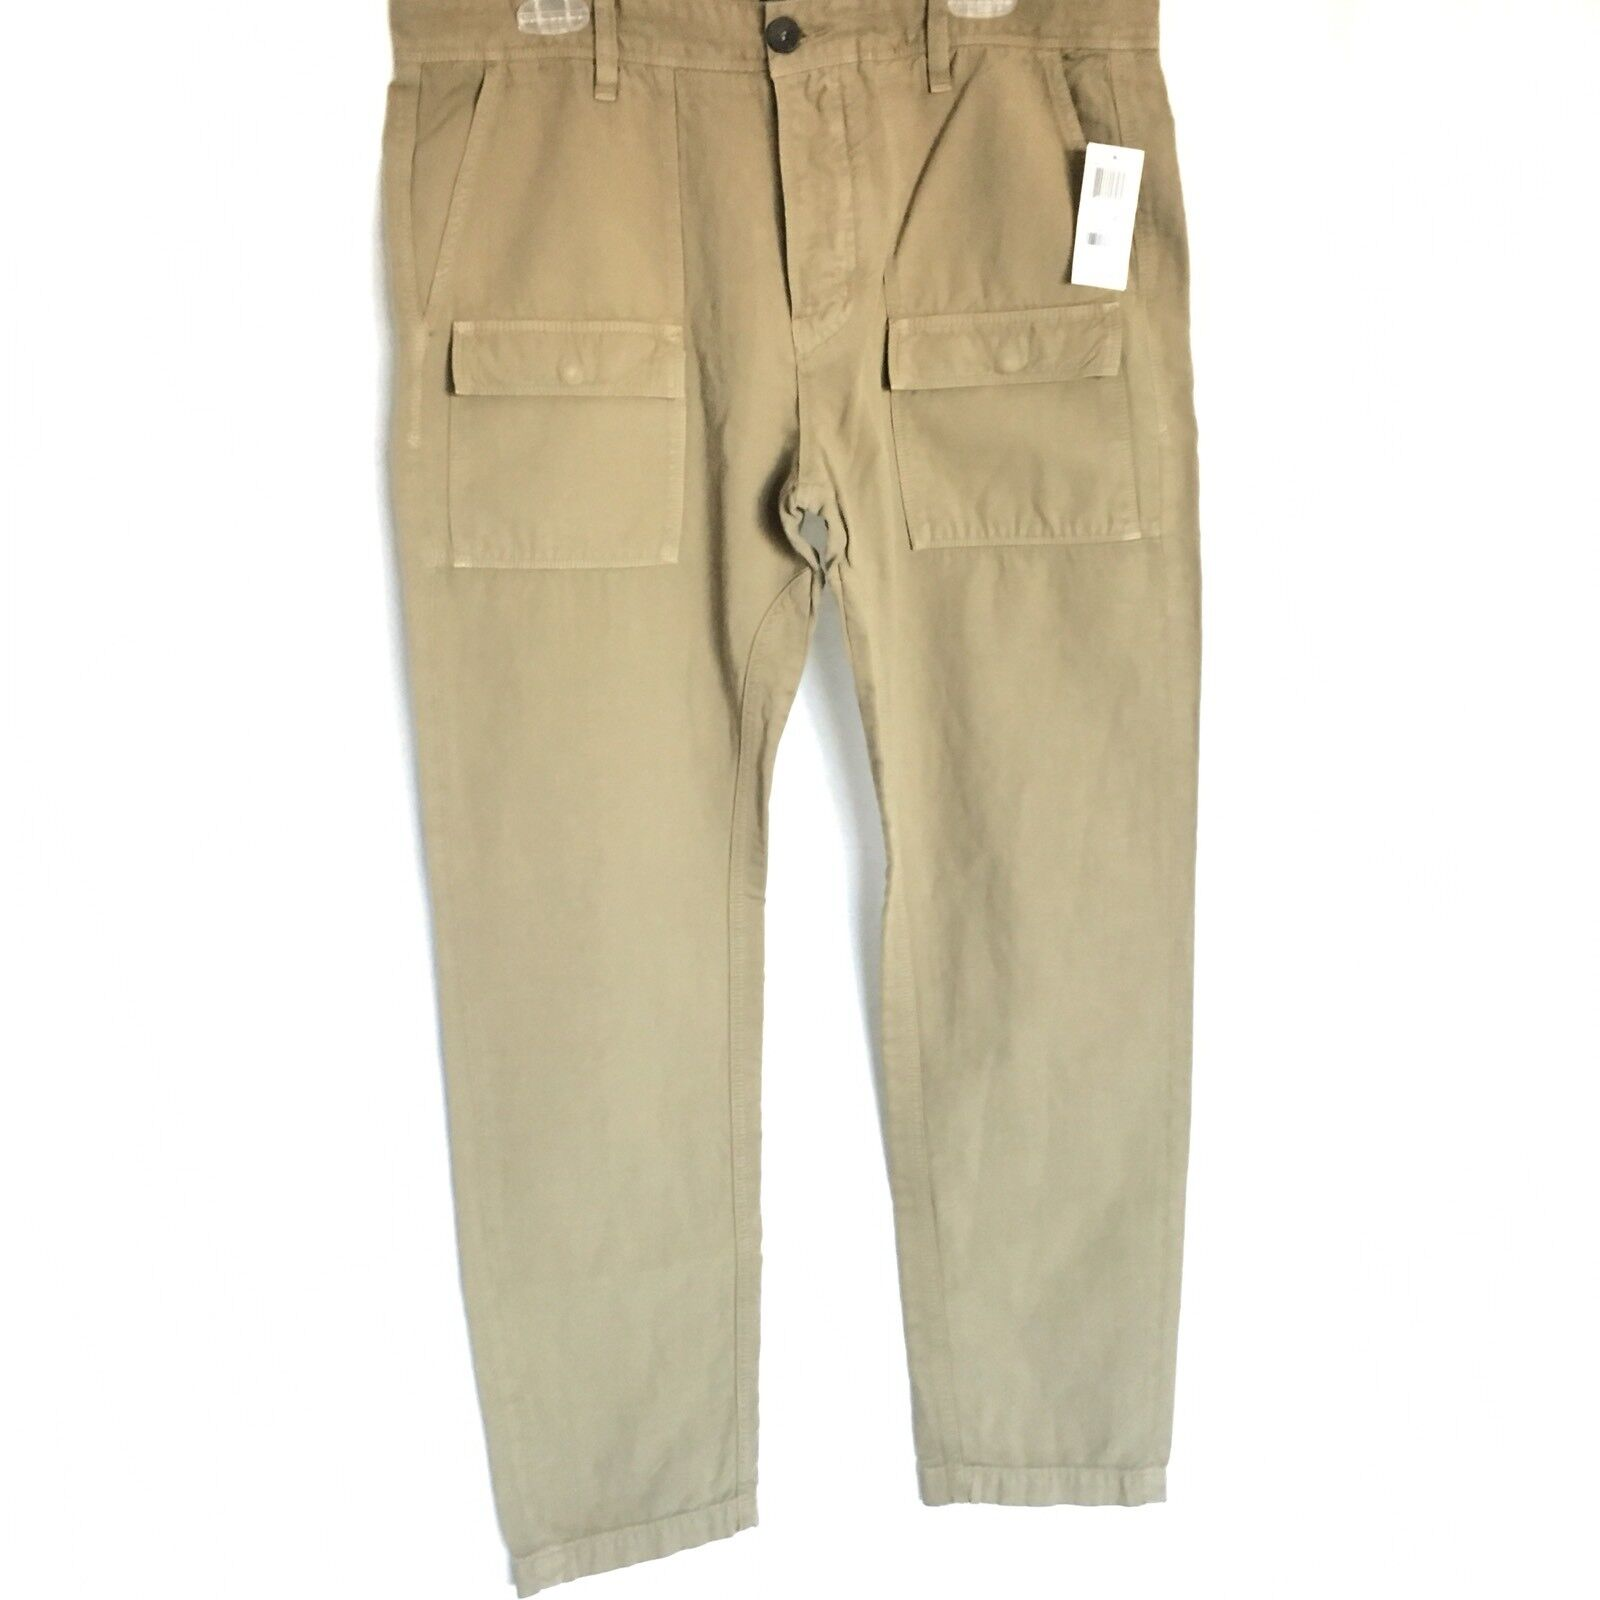 7 For All Mankind Mens Slim Fit Khaki Pants Size 36 x 30 Fashion Jeans NWT